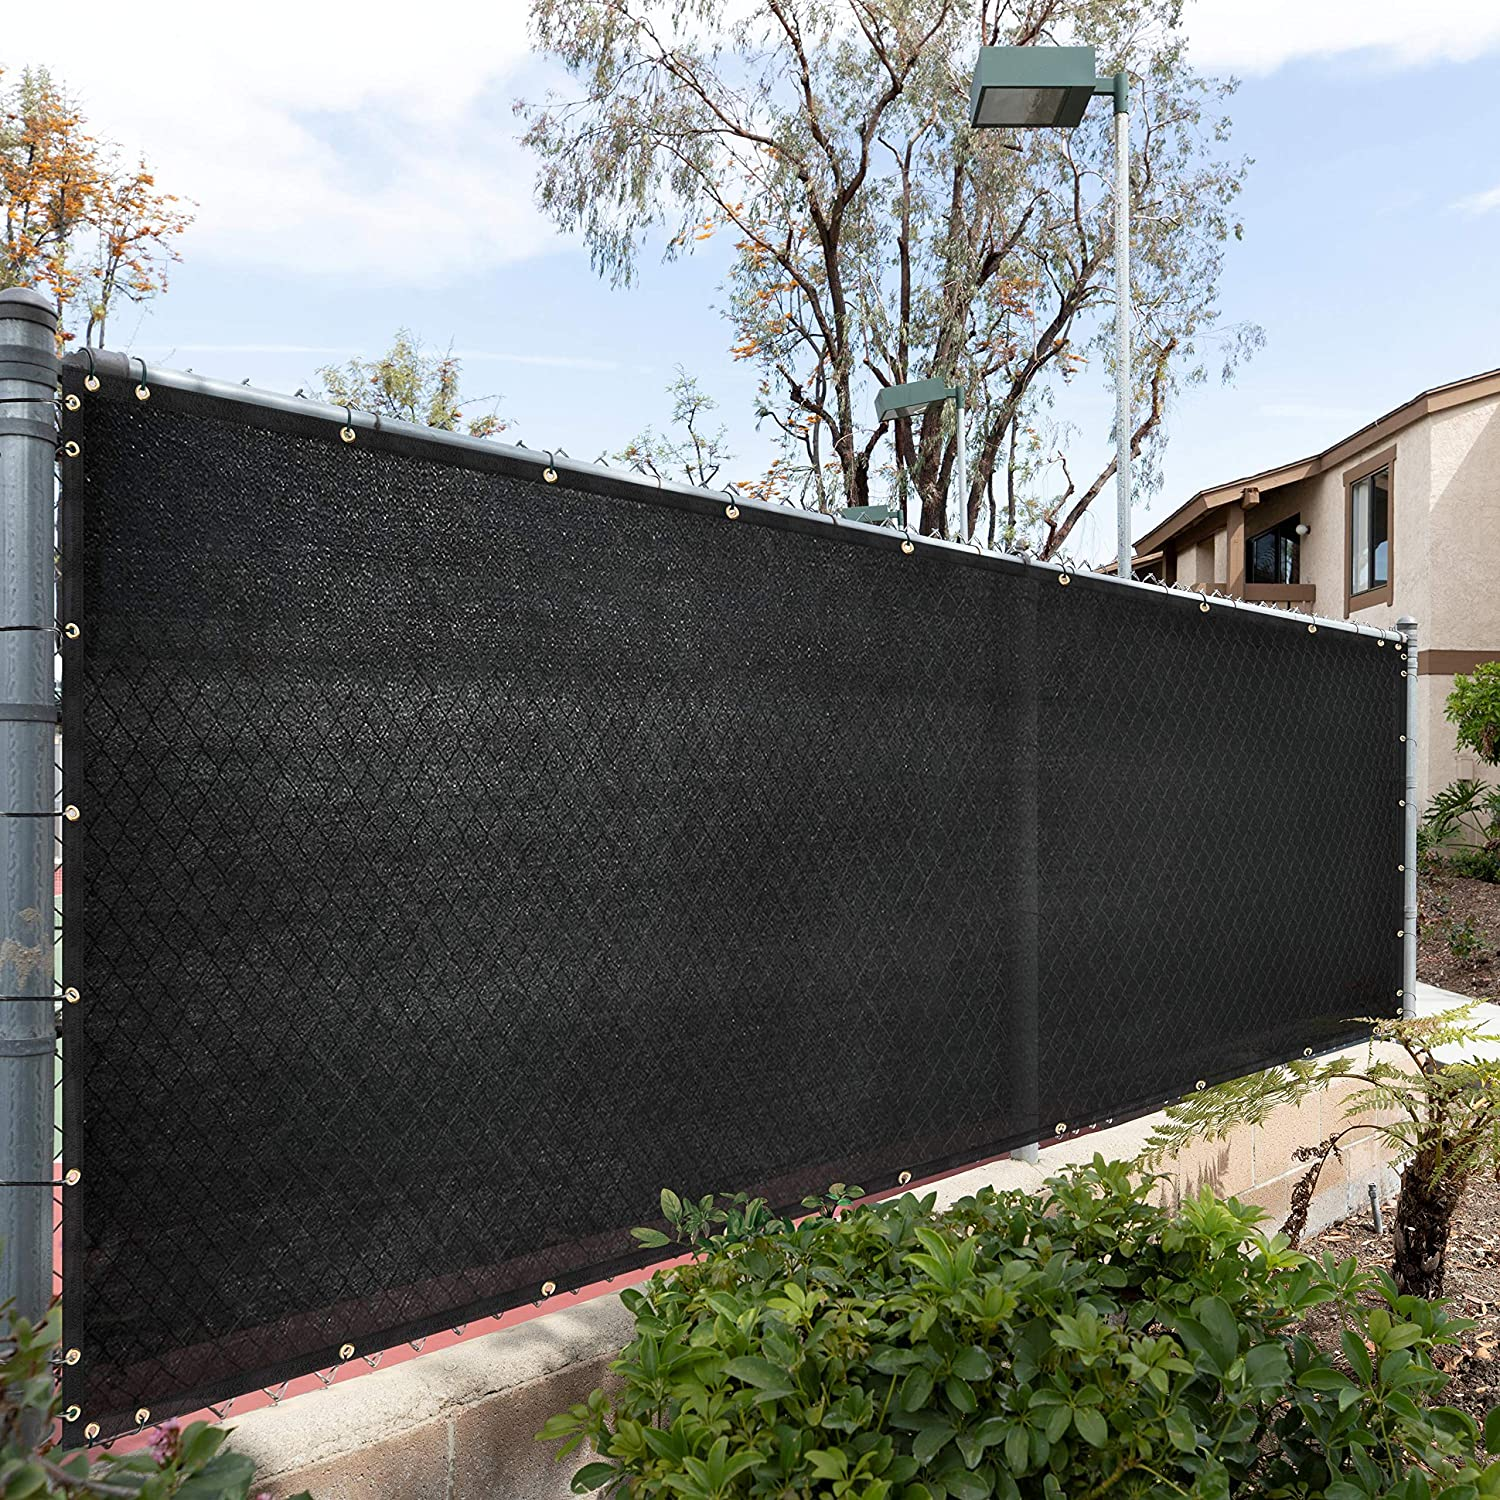 Royal Shade 5' x Don't miss the campaign All items in the store 50' Black Windscreen Cover Fence Privacy Screen